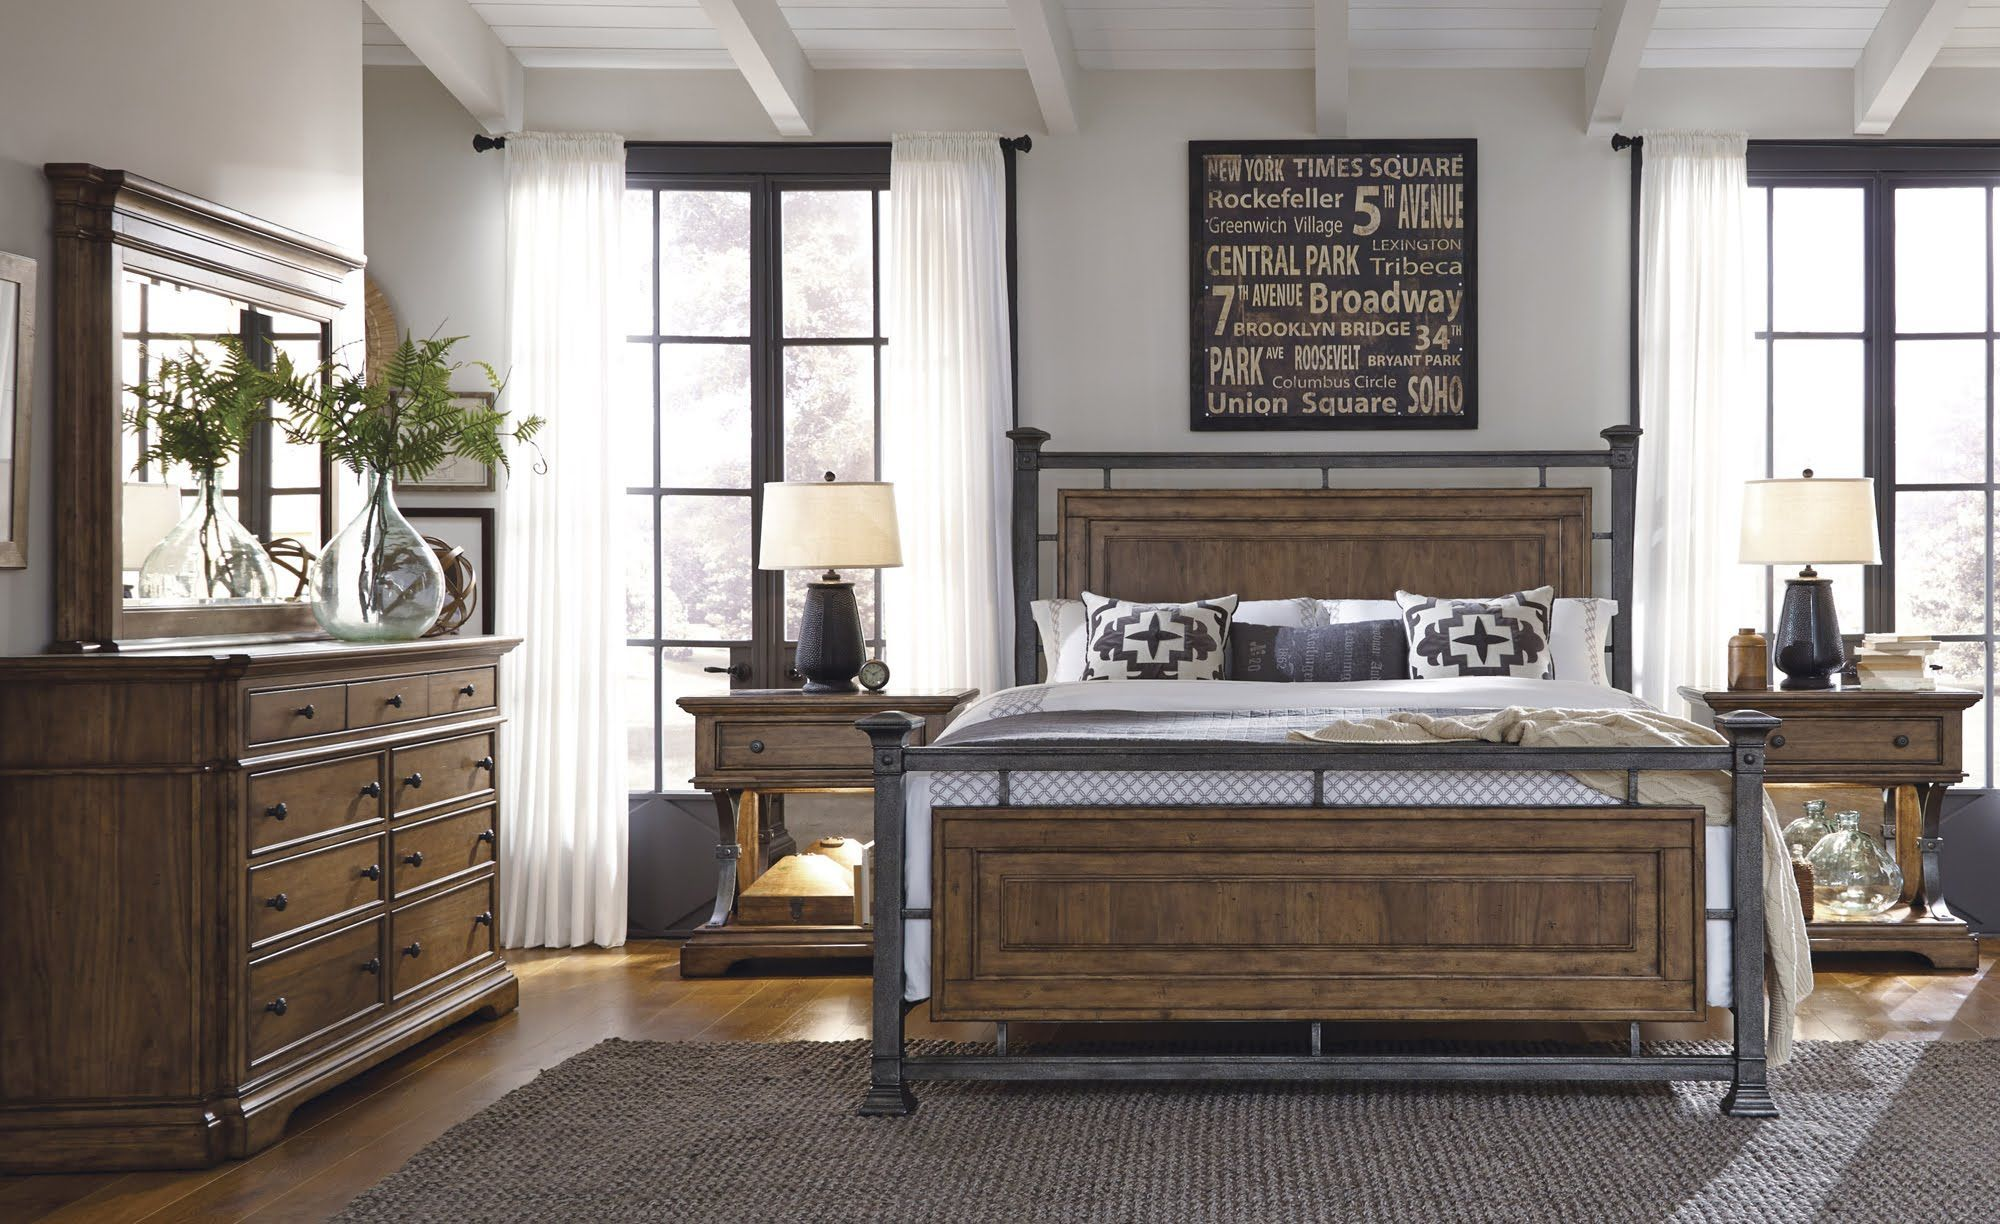 Awesome 13 Of The Coolest Designs Of How To Makeover Metal Bedroom Furniture For You Wood Bedroom Sets Metal Bedroom Furniture Wood Bedroom Furniture Wood and metal bedroom sets